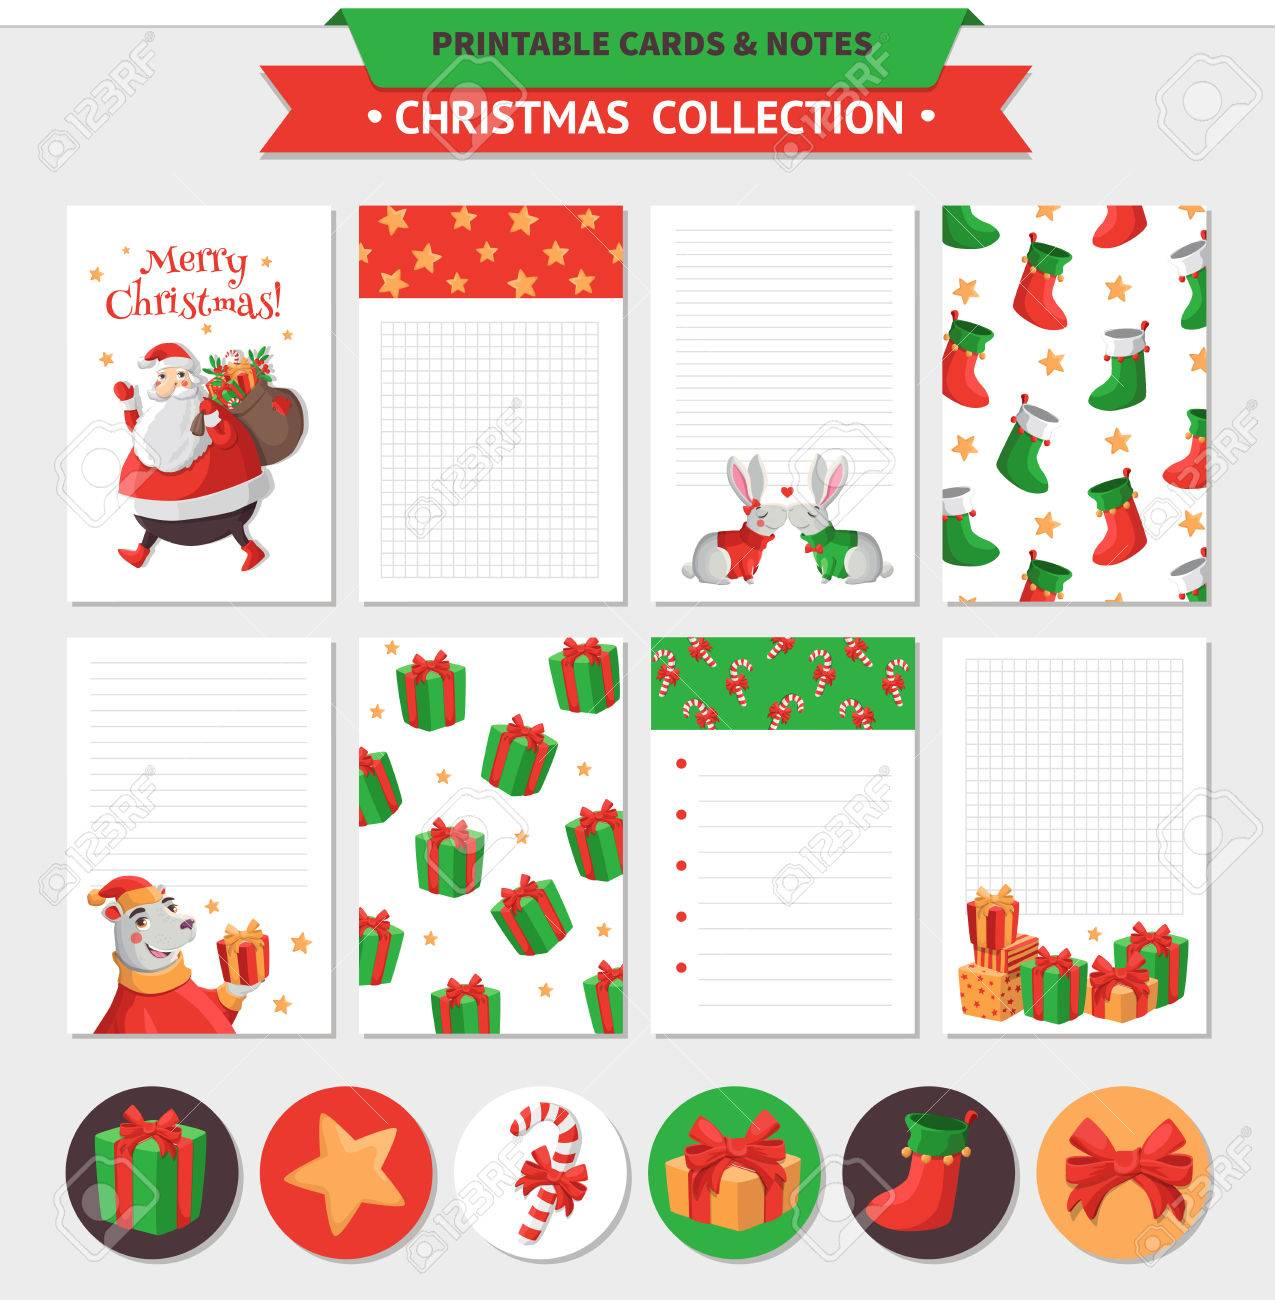 graphic regarding Merry Christmas Printable named Merry Xmas example. Vector printable playing cards, notes and..